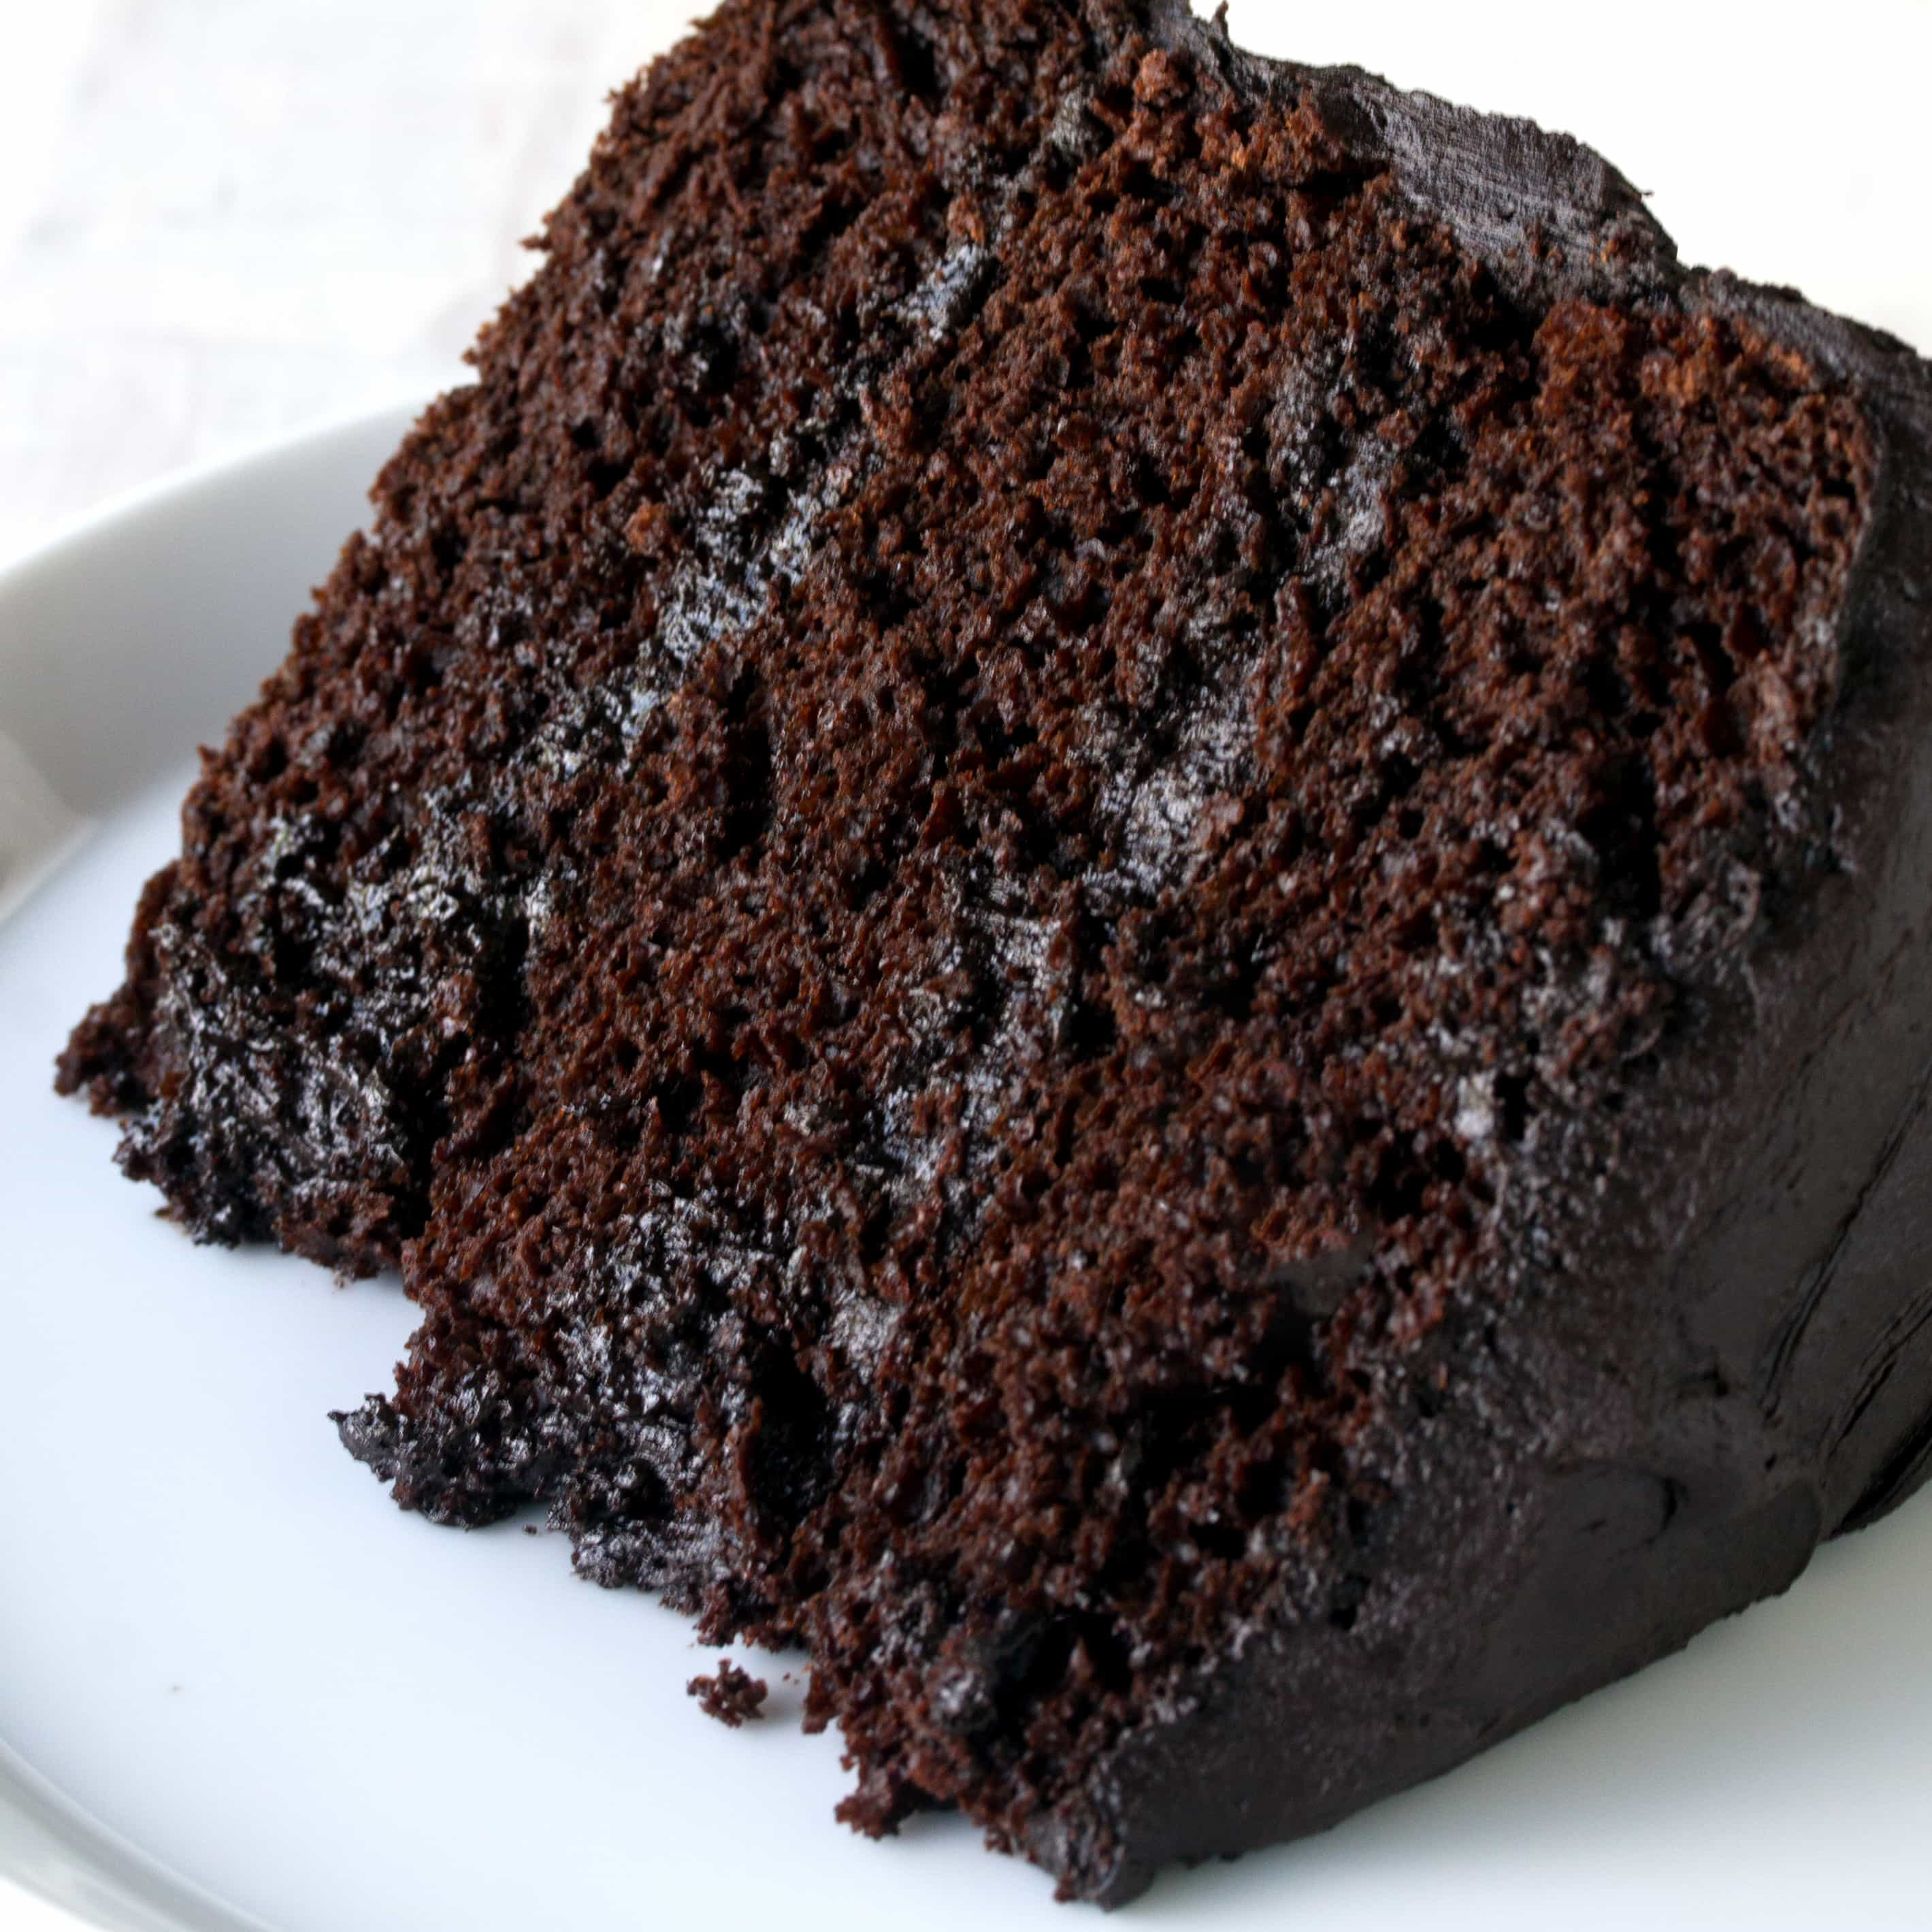 Most Moist Chocolate Cake Ever